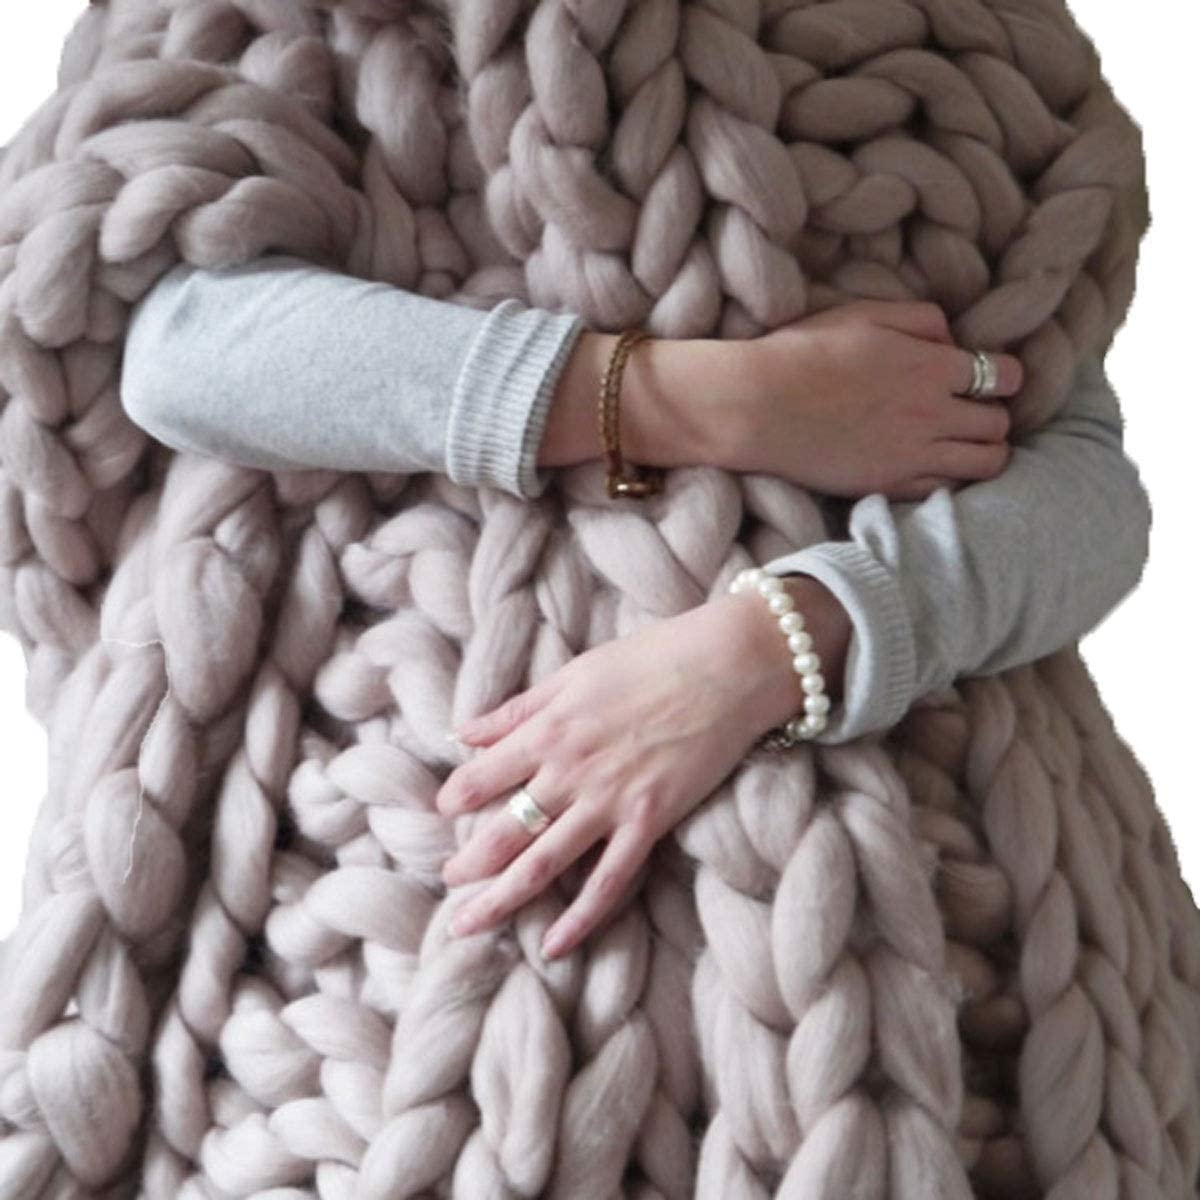 QWERTYUKJ Chunky Knit Blanket Hand Made Super Wool Indianapolis Mall Throw Max 69% OFF Merino